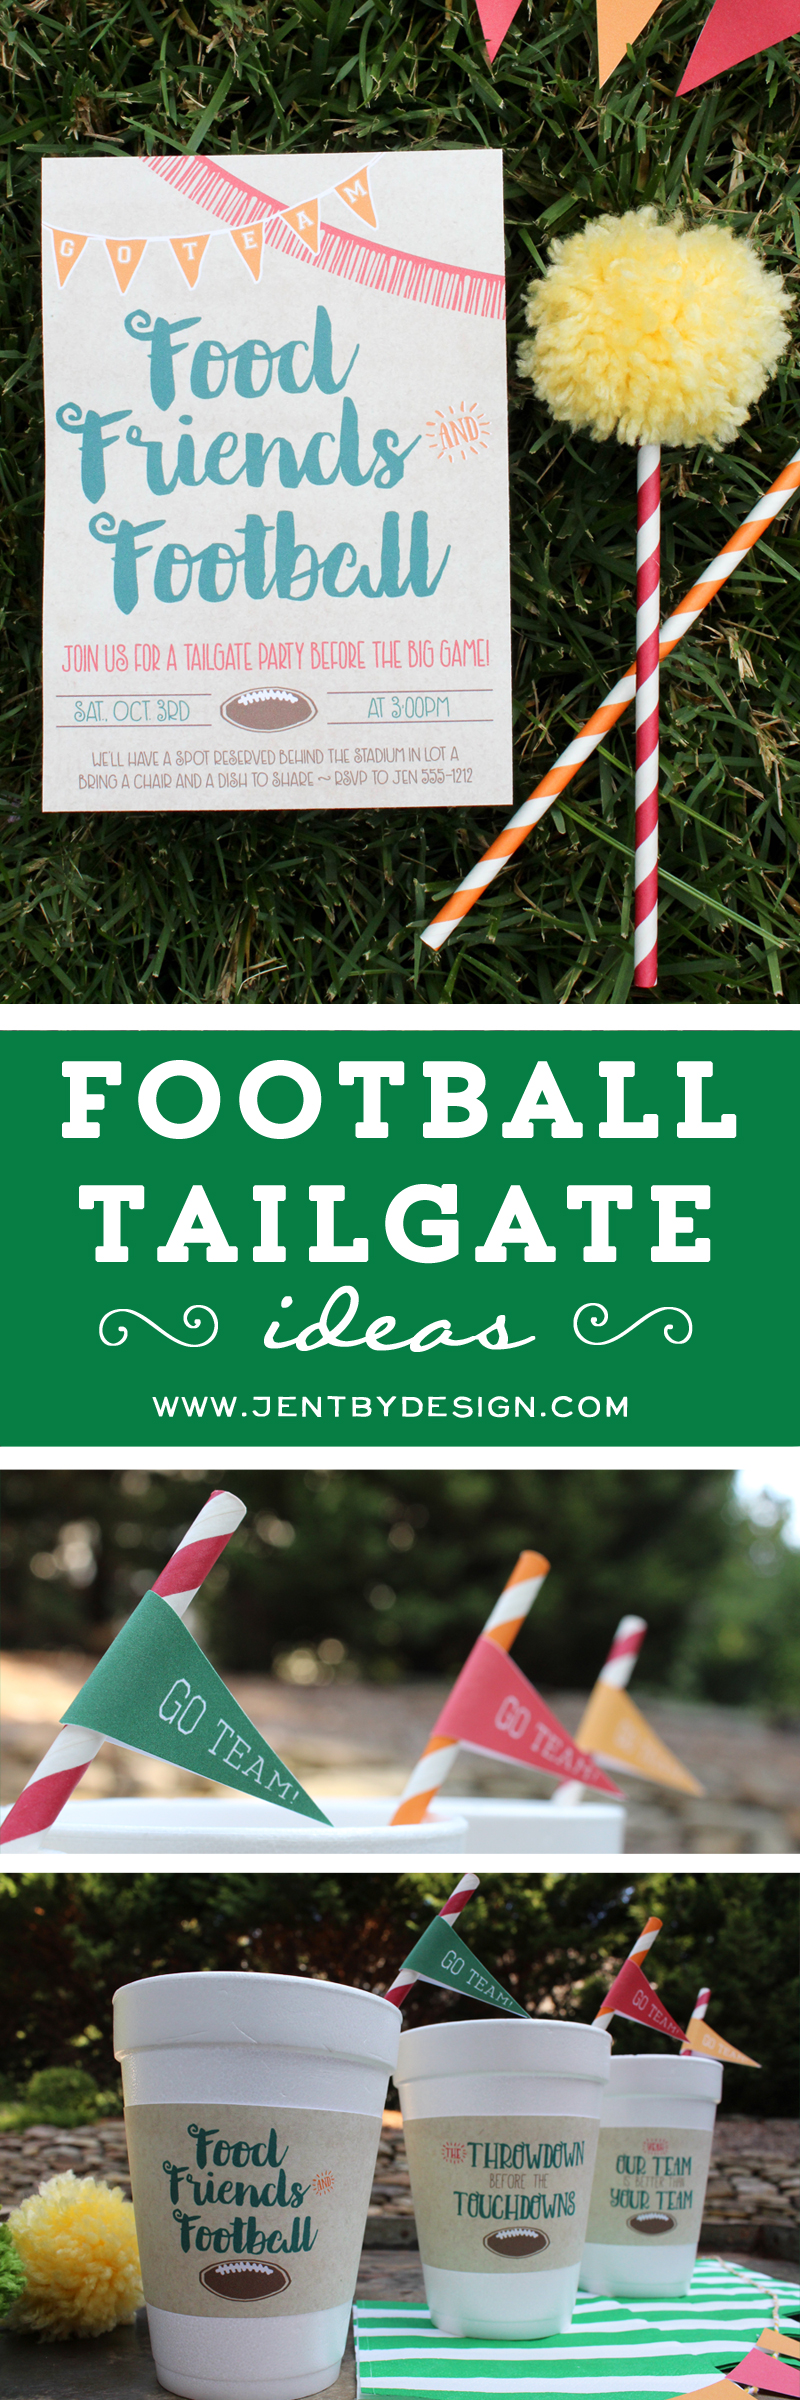 Football Tailgate Ideas - JenTbyDesign.com